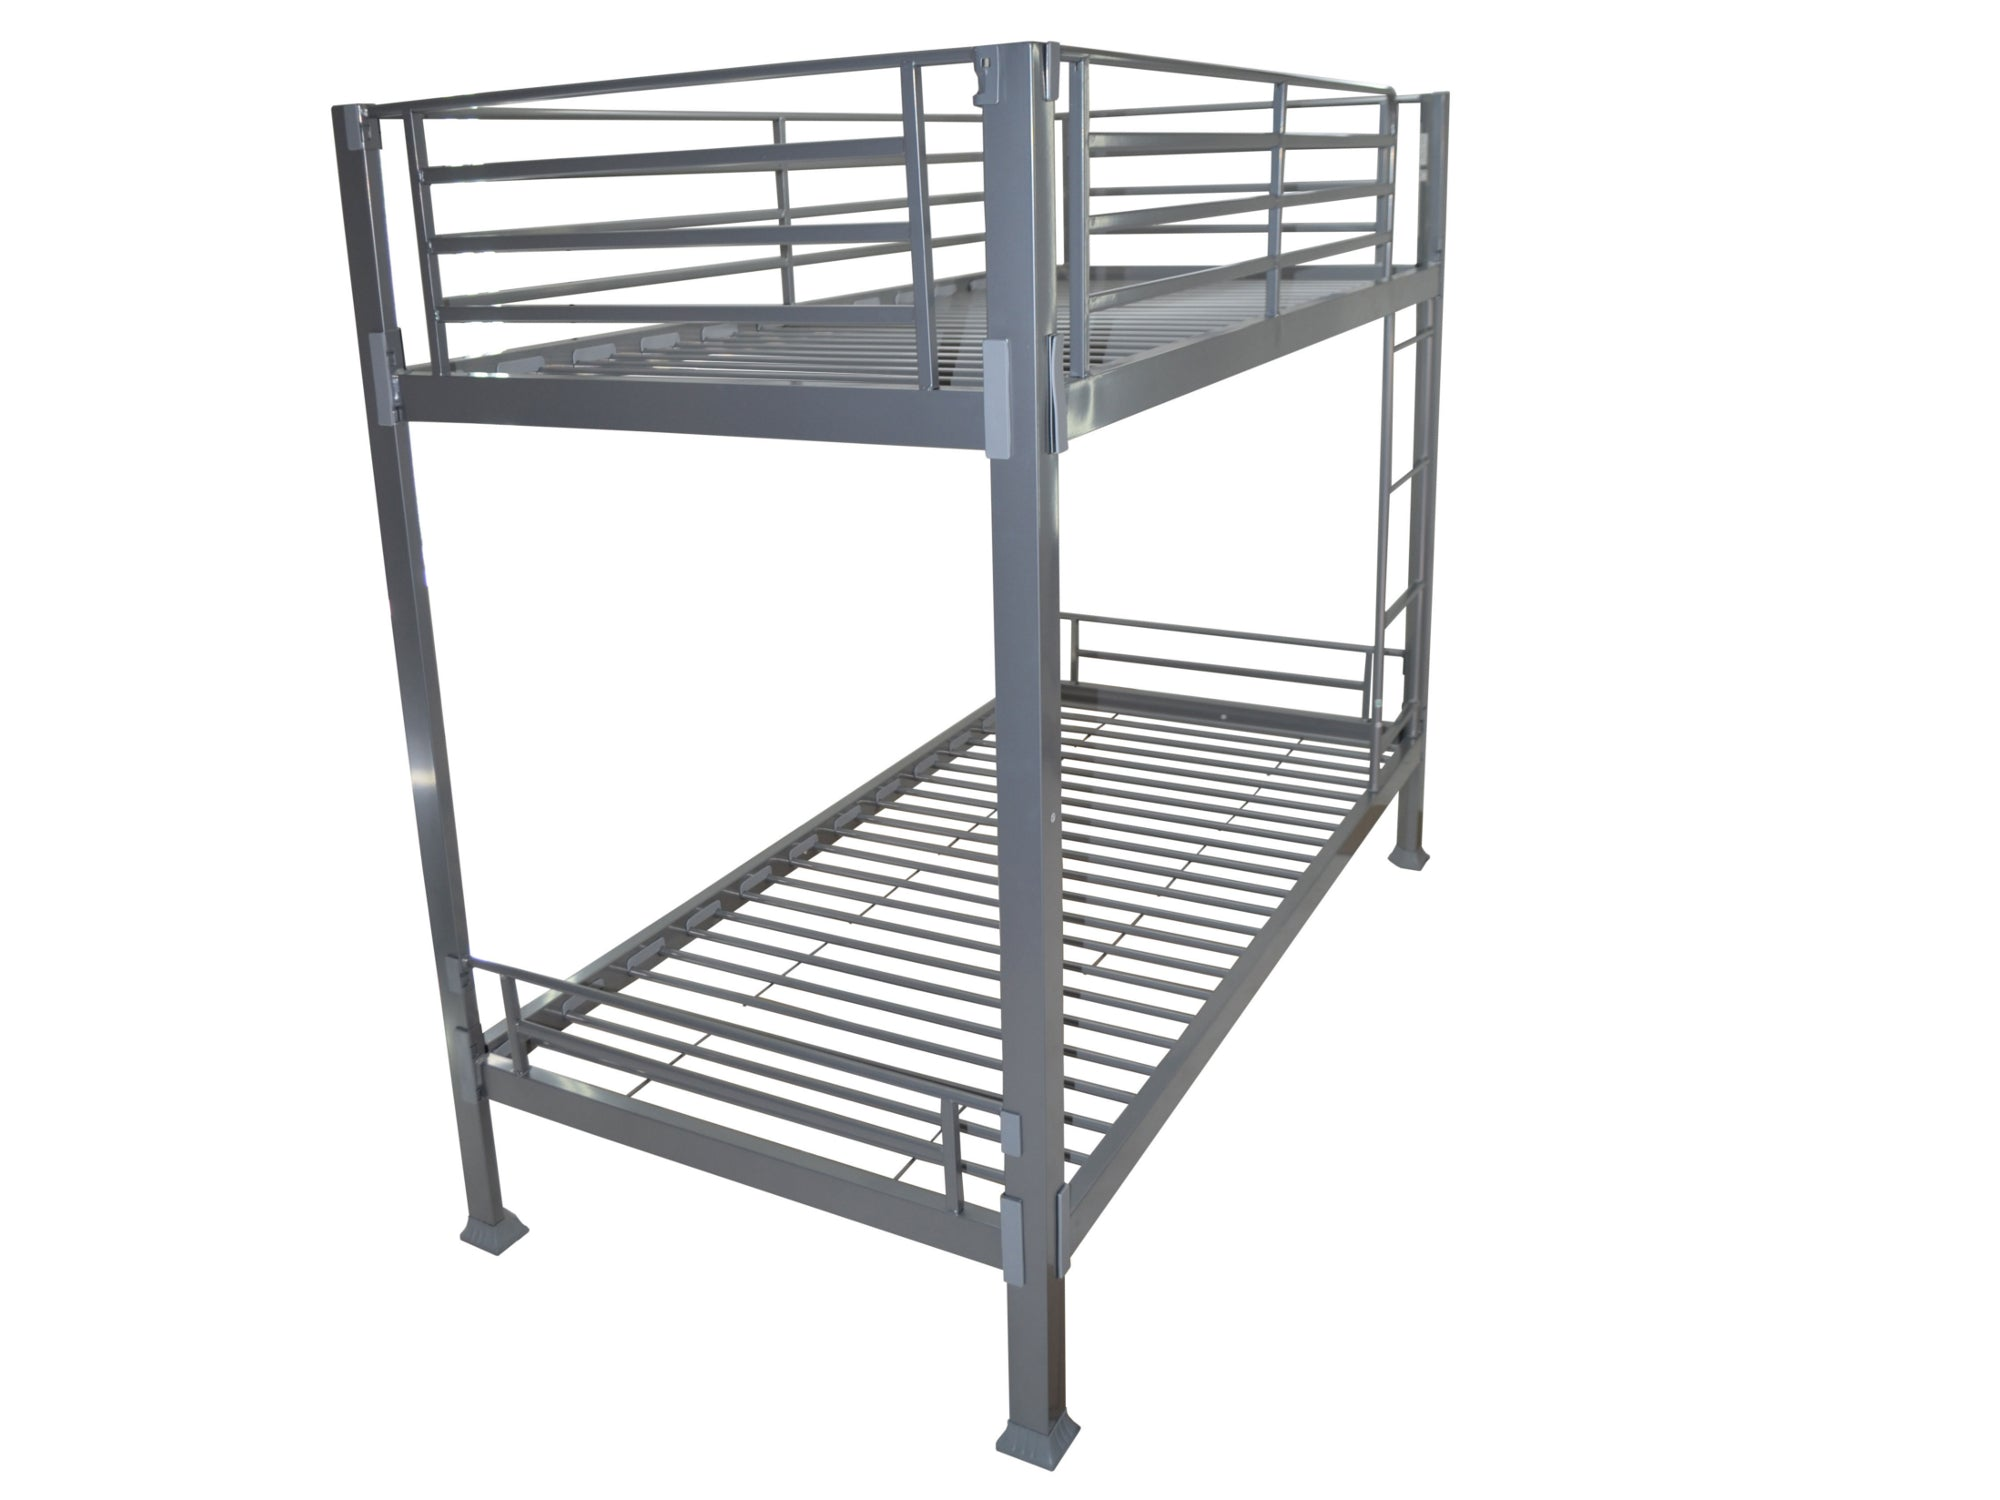 Picture of: Bunkit Metal Bunk Bed In Silver The Cosy Company Ltd